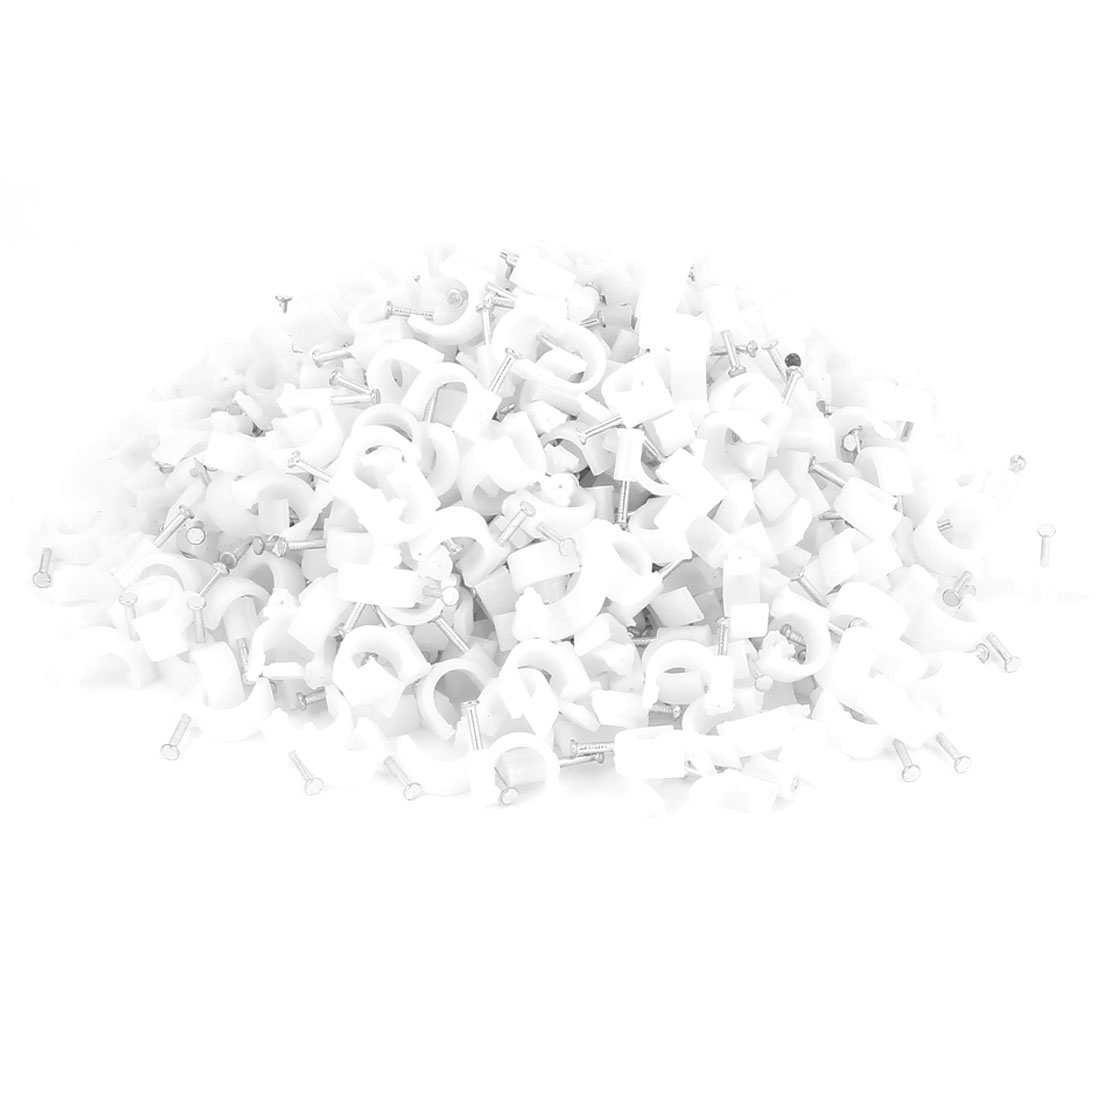 Wall Mount 10mm Dia Electric Cable Circle Nail Clips Fastener 650 Pcs